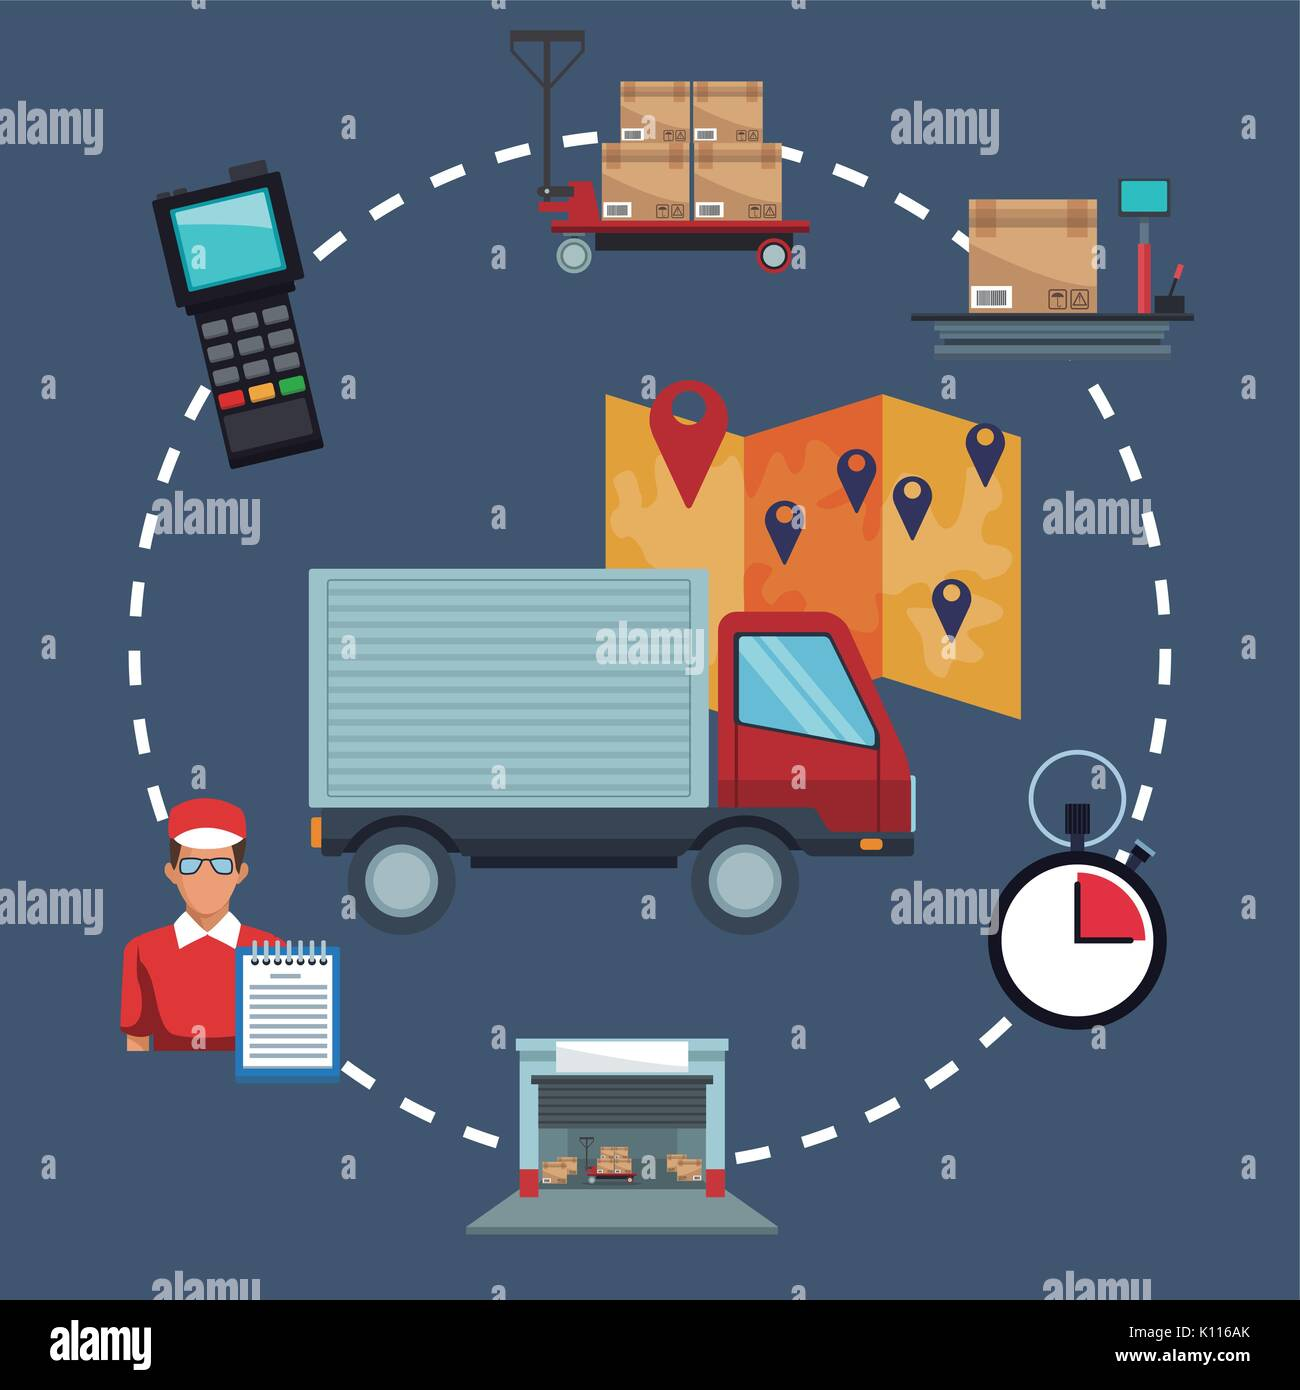 color background with icons storage logistics and closeup truck with map location - Stock Image